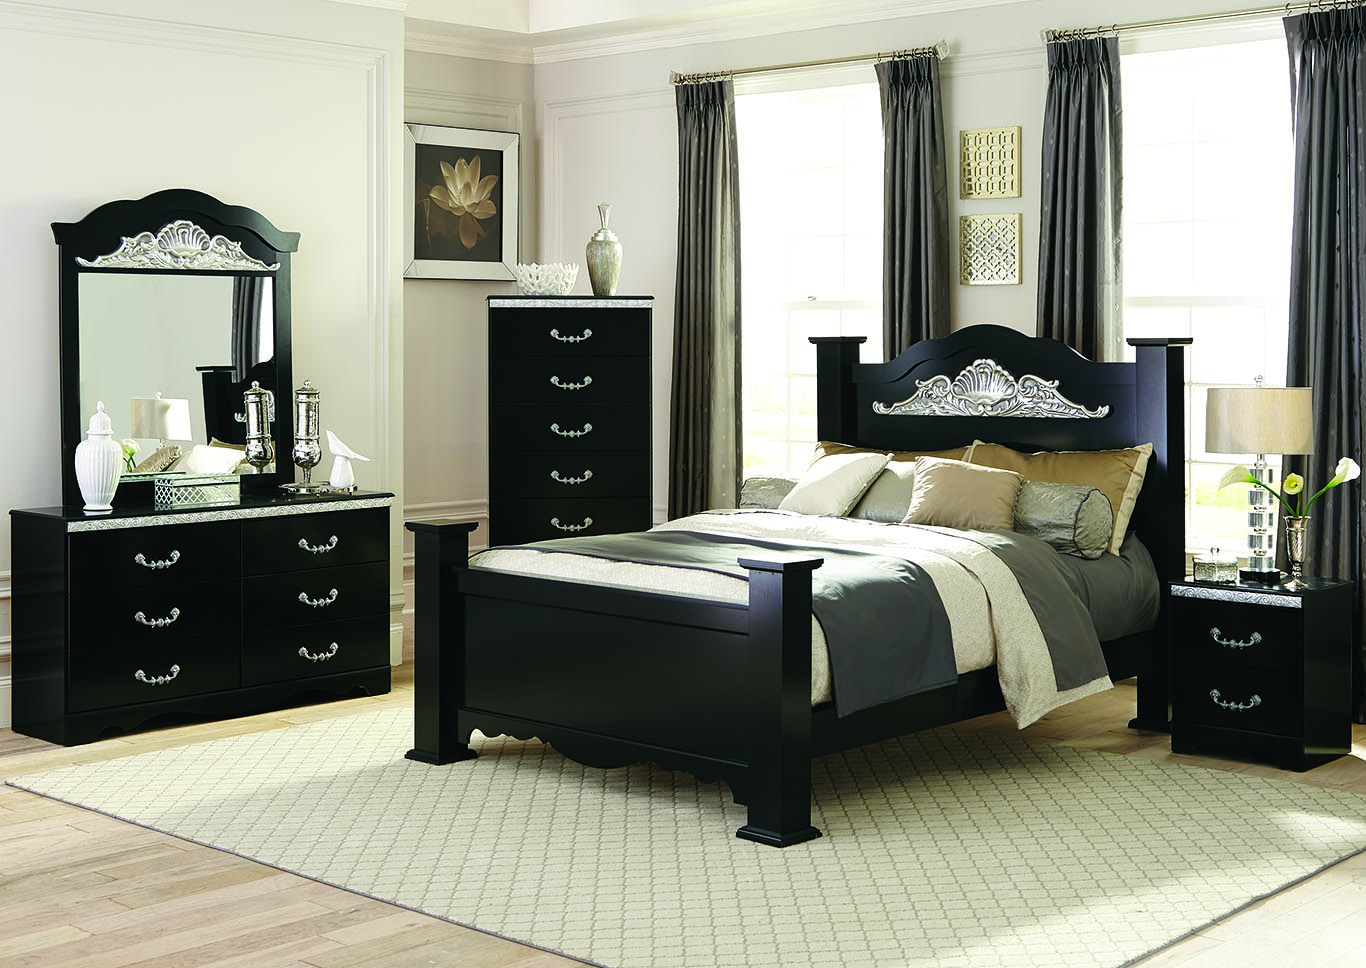 Coosa King Poster Bed,Kith